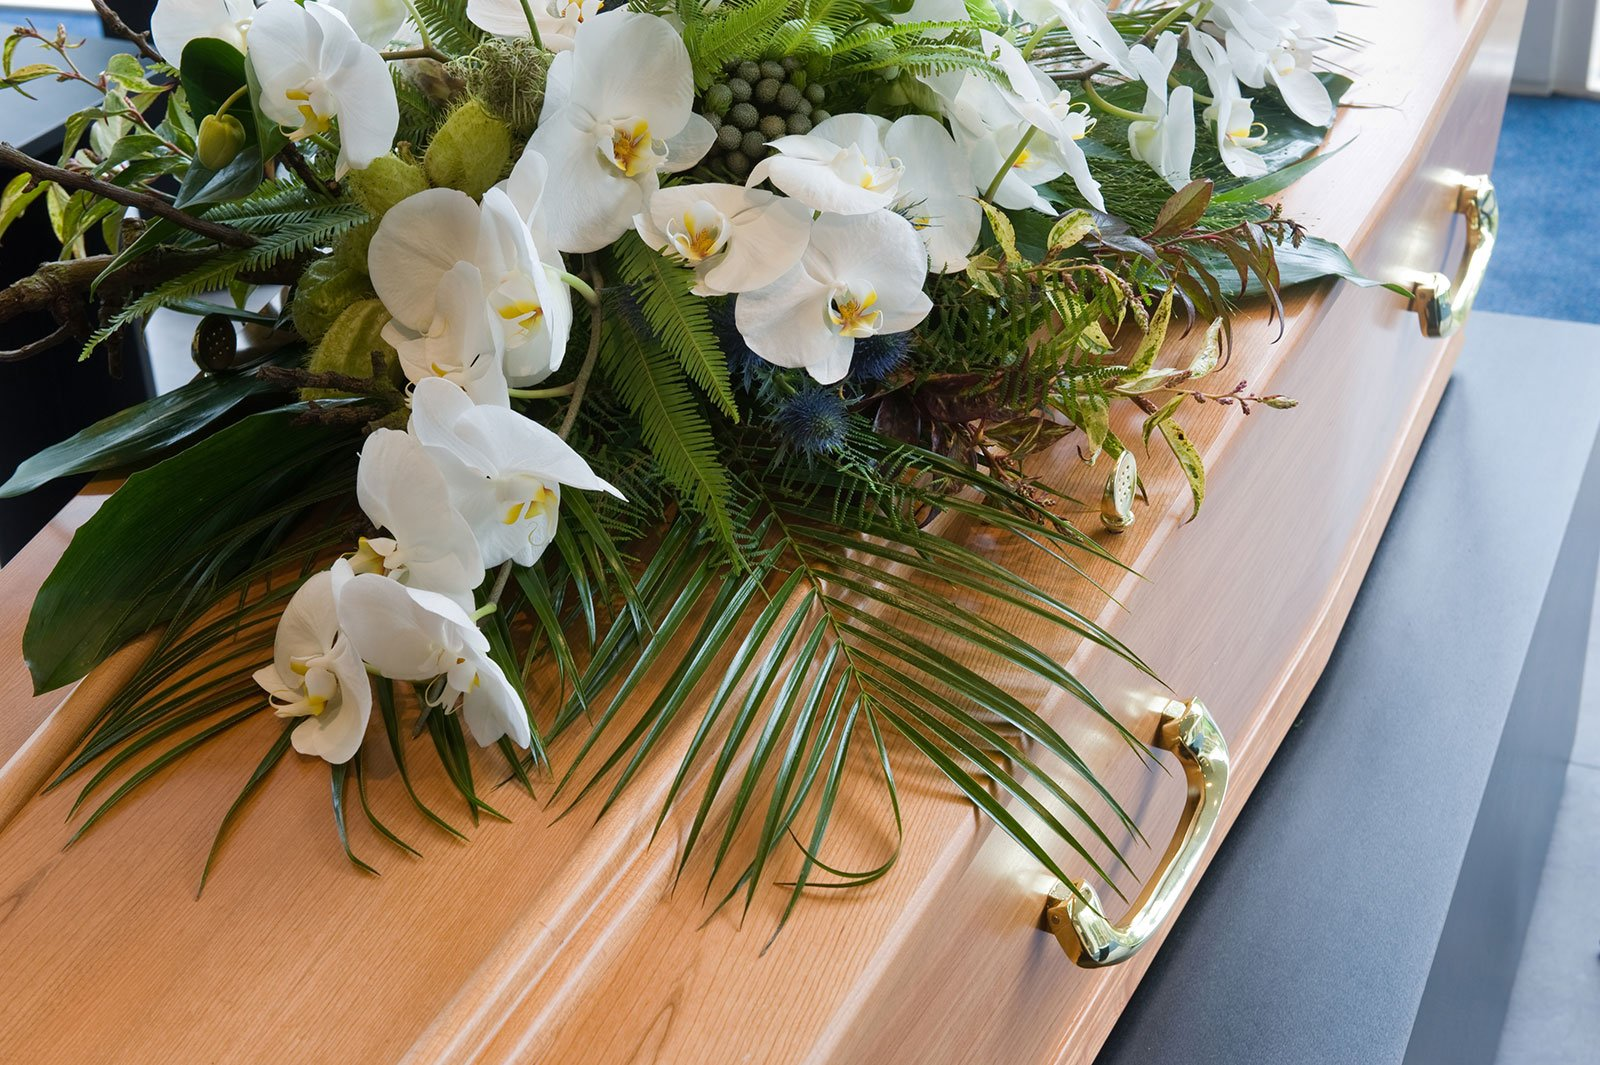 Choosing a burial - Burials are a traditional option, and many people choose to be buried in a cemetery or graveyard that holds other family members. We will help you make arrangements for burials throughout Thornton-Cleveleys and the surrounding areas of Lancashire, making sure that every aspect of the service is dignified and follows your loved one's wishes.